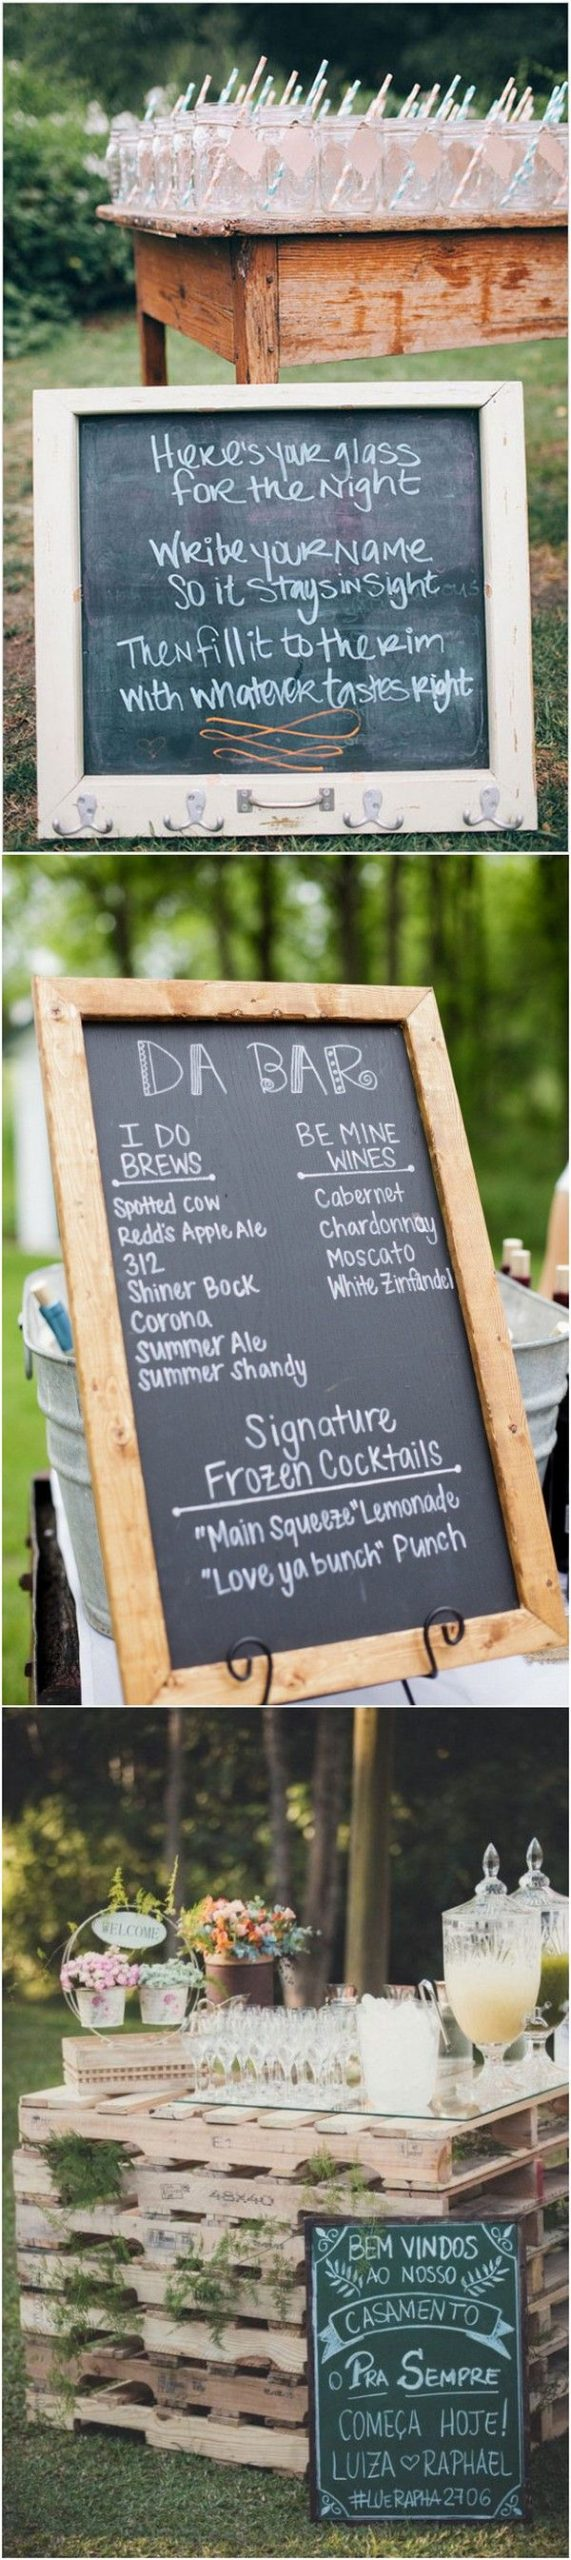 20 Amazing Drink Stations for Outdoor Wedding Ideas – Oh Best Day Ever